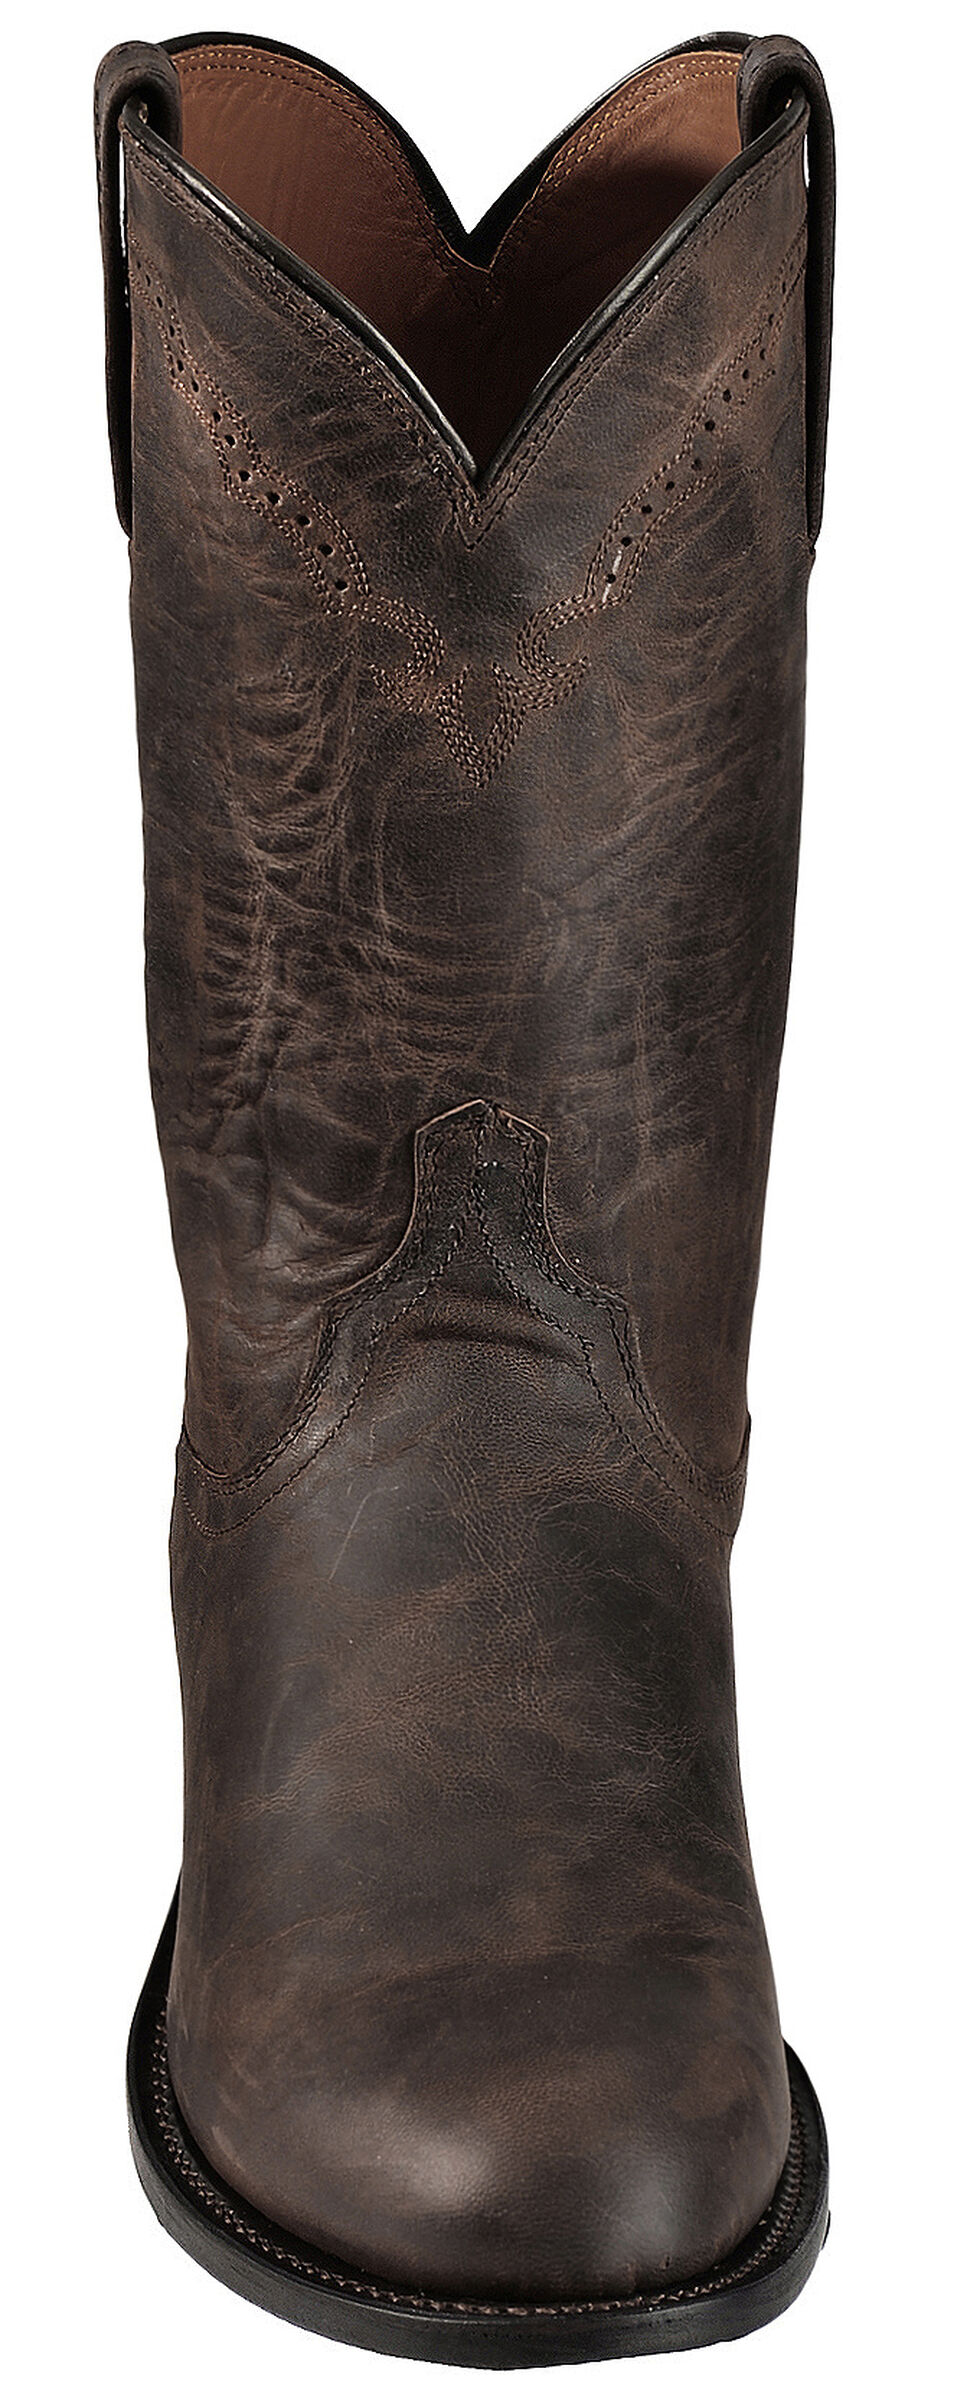 Lucchese 1883 Handmade Madras Goat Roper Boots - Round Toe, Chocolate, hi-res